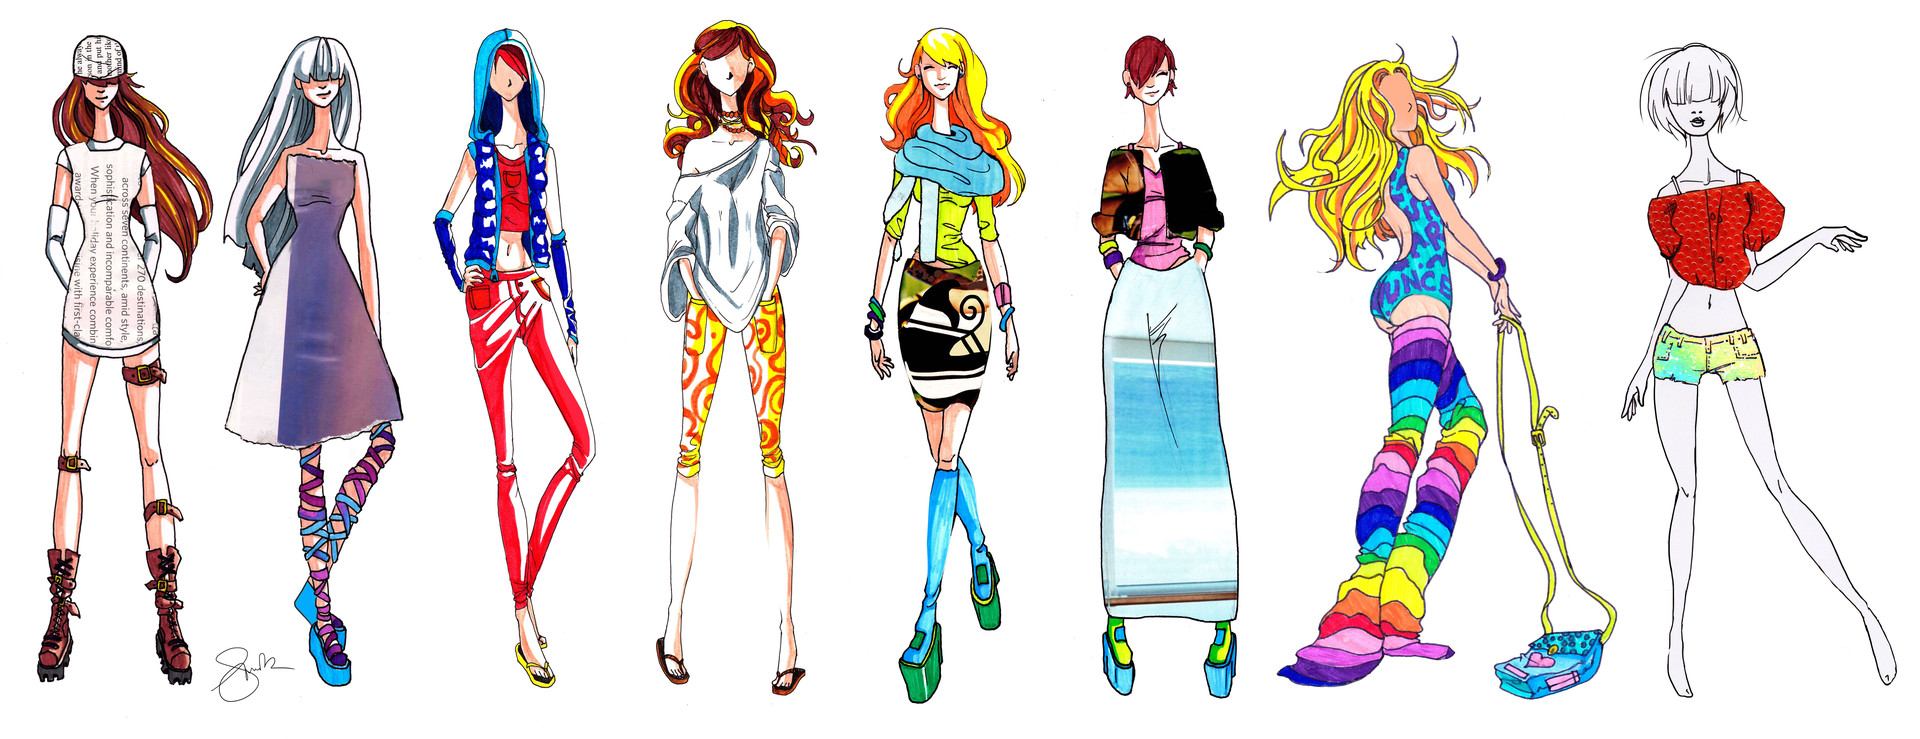 Shellz art fashion designs 1